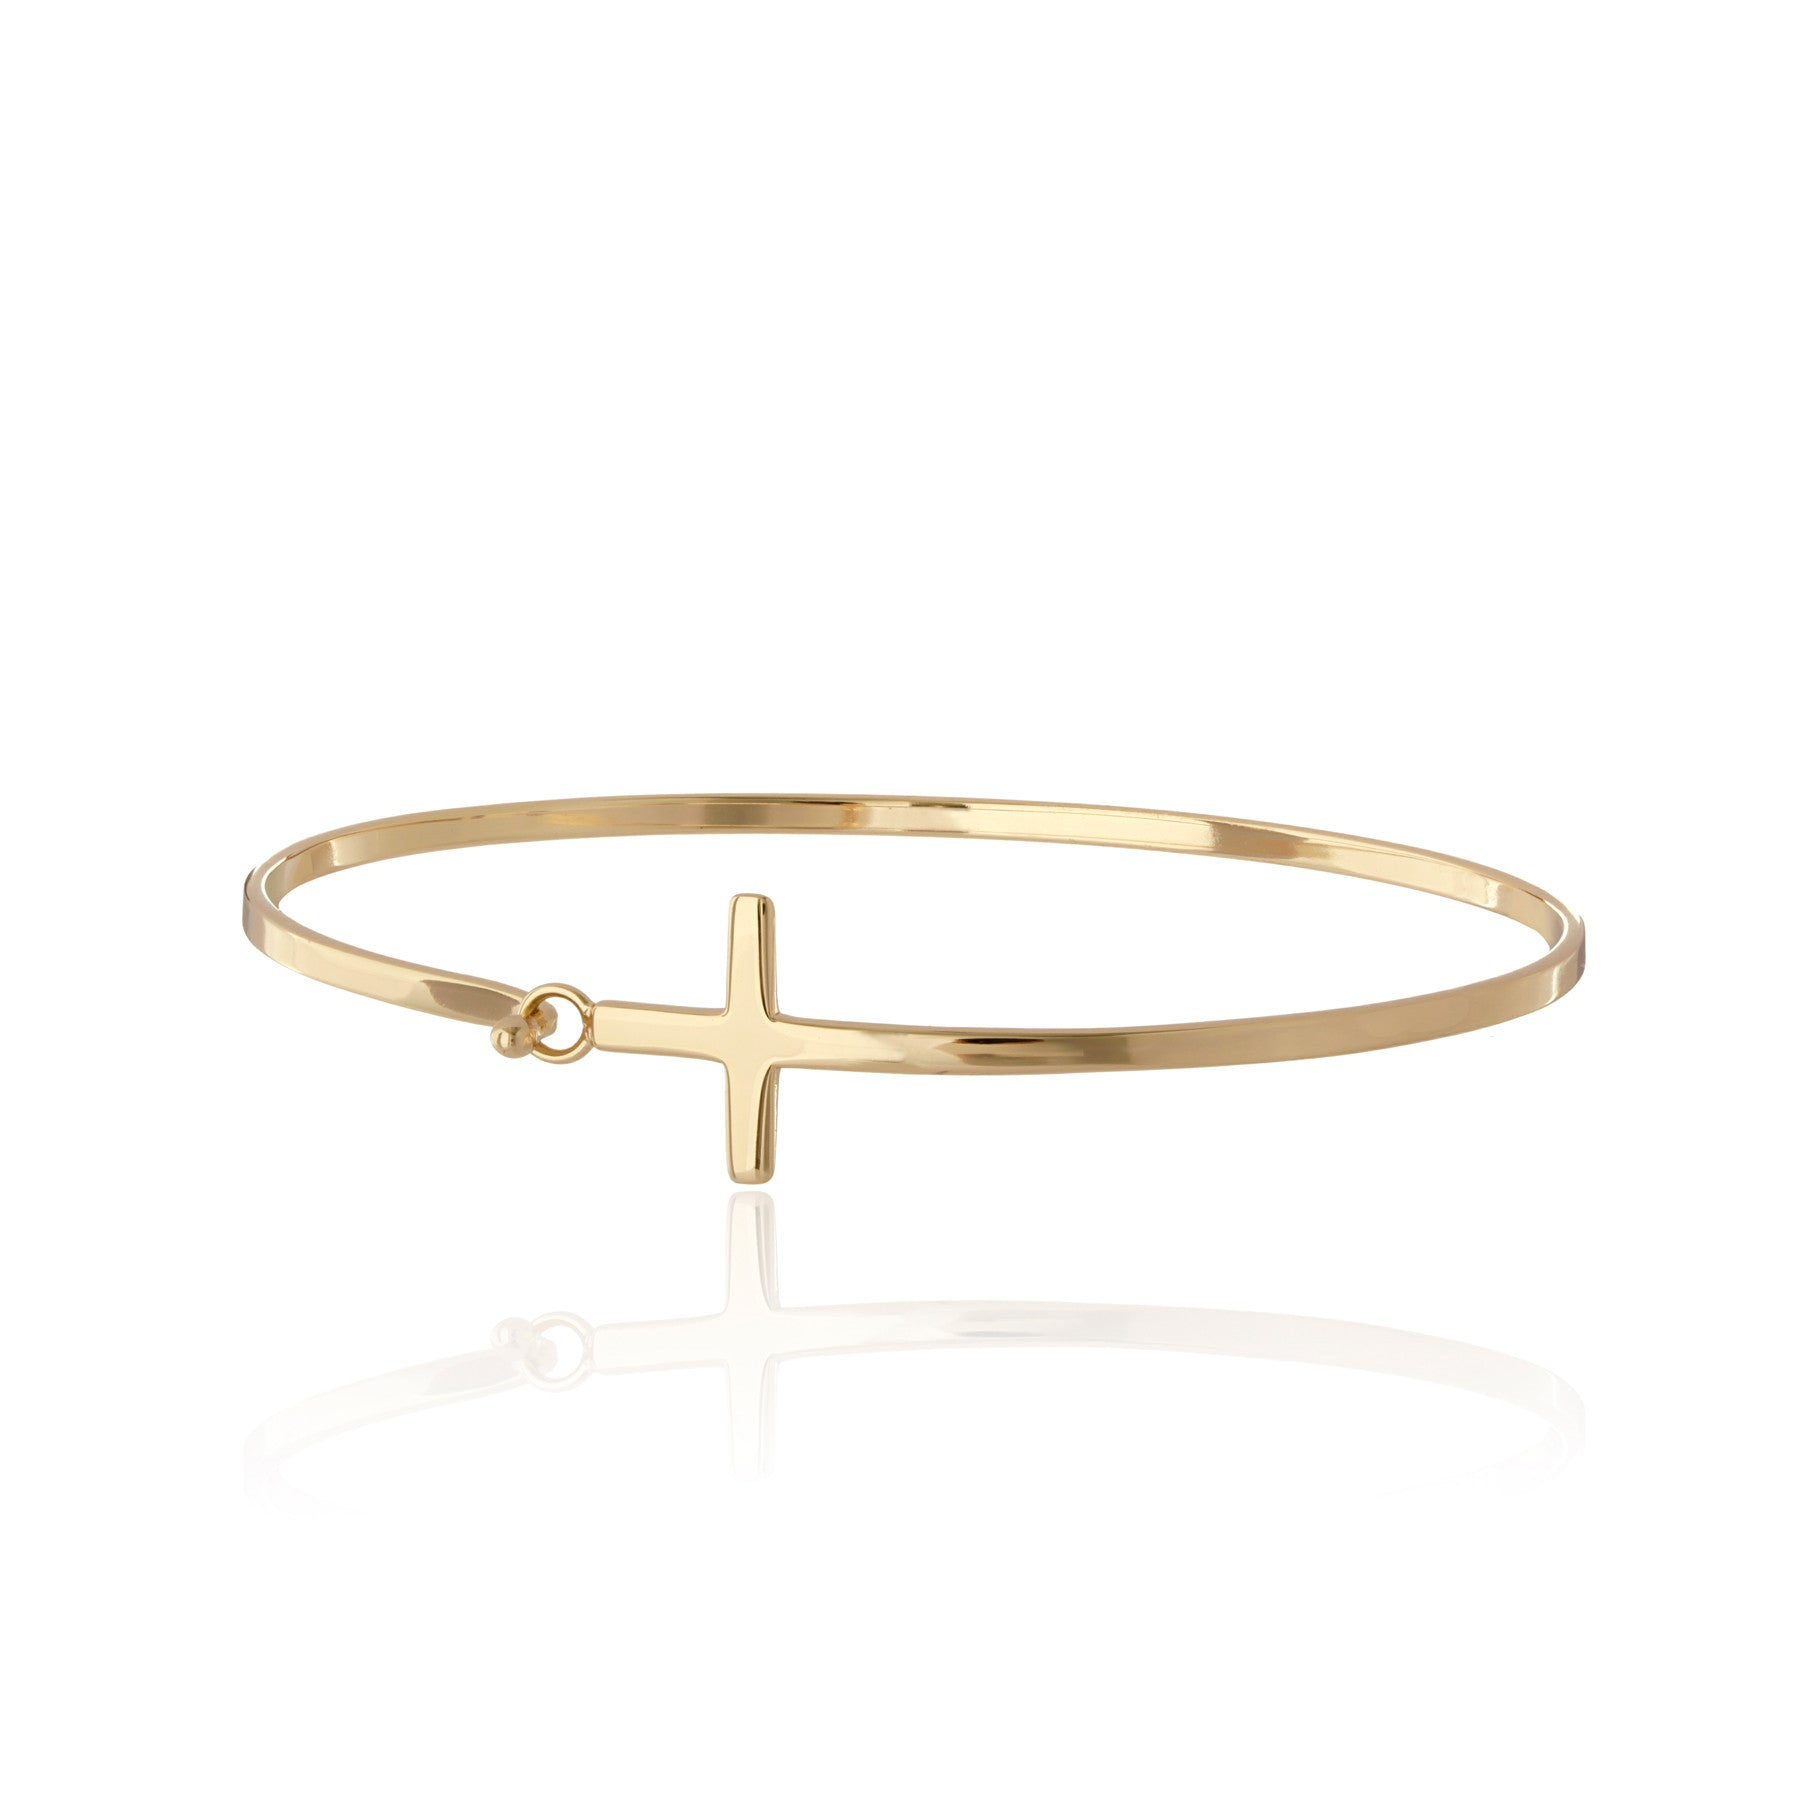 Bernadette Sideways Cross Bangle